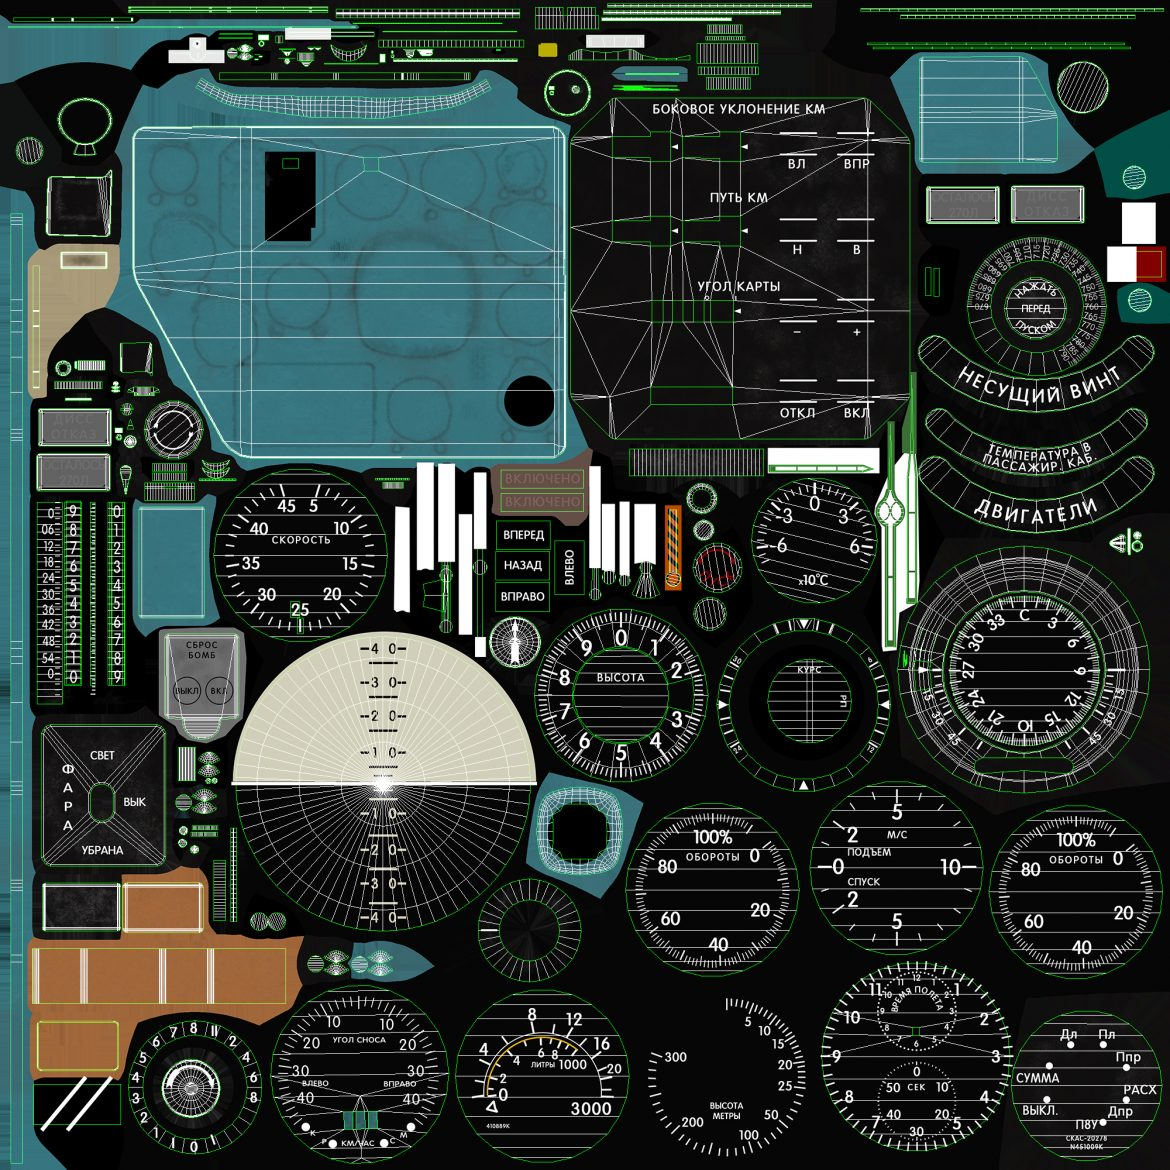 mi-8mt mi-17mt panel boards russian 3d model 3ds max fbx obj 302032